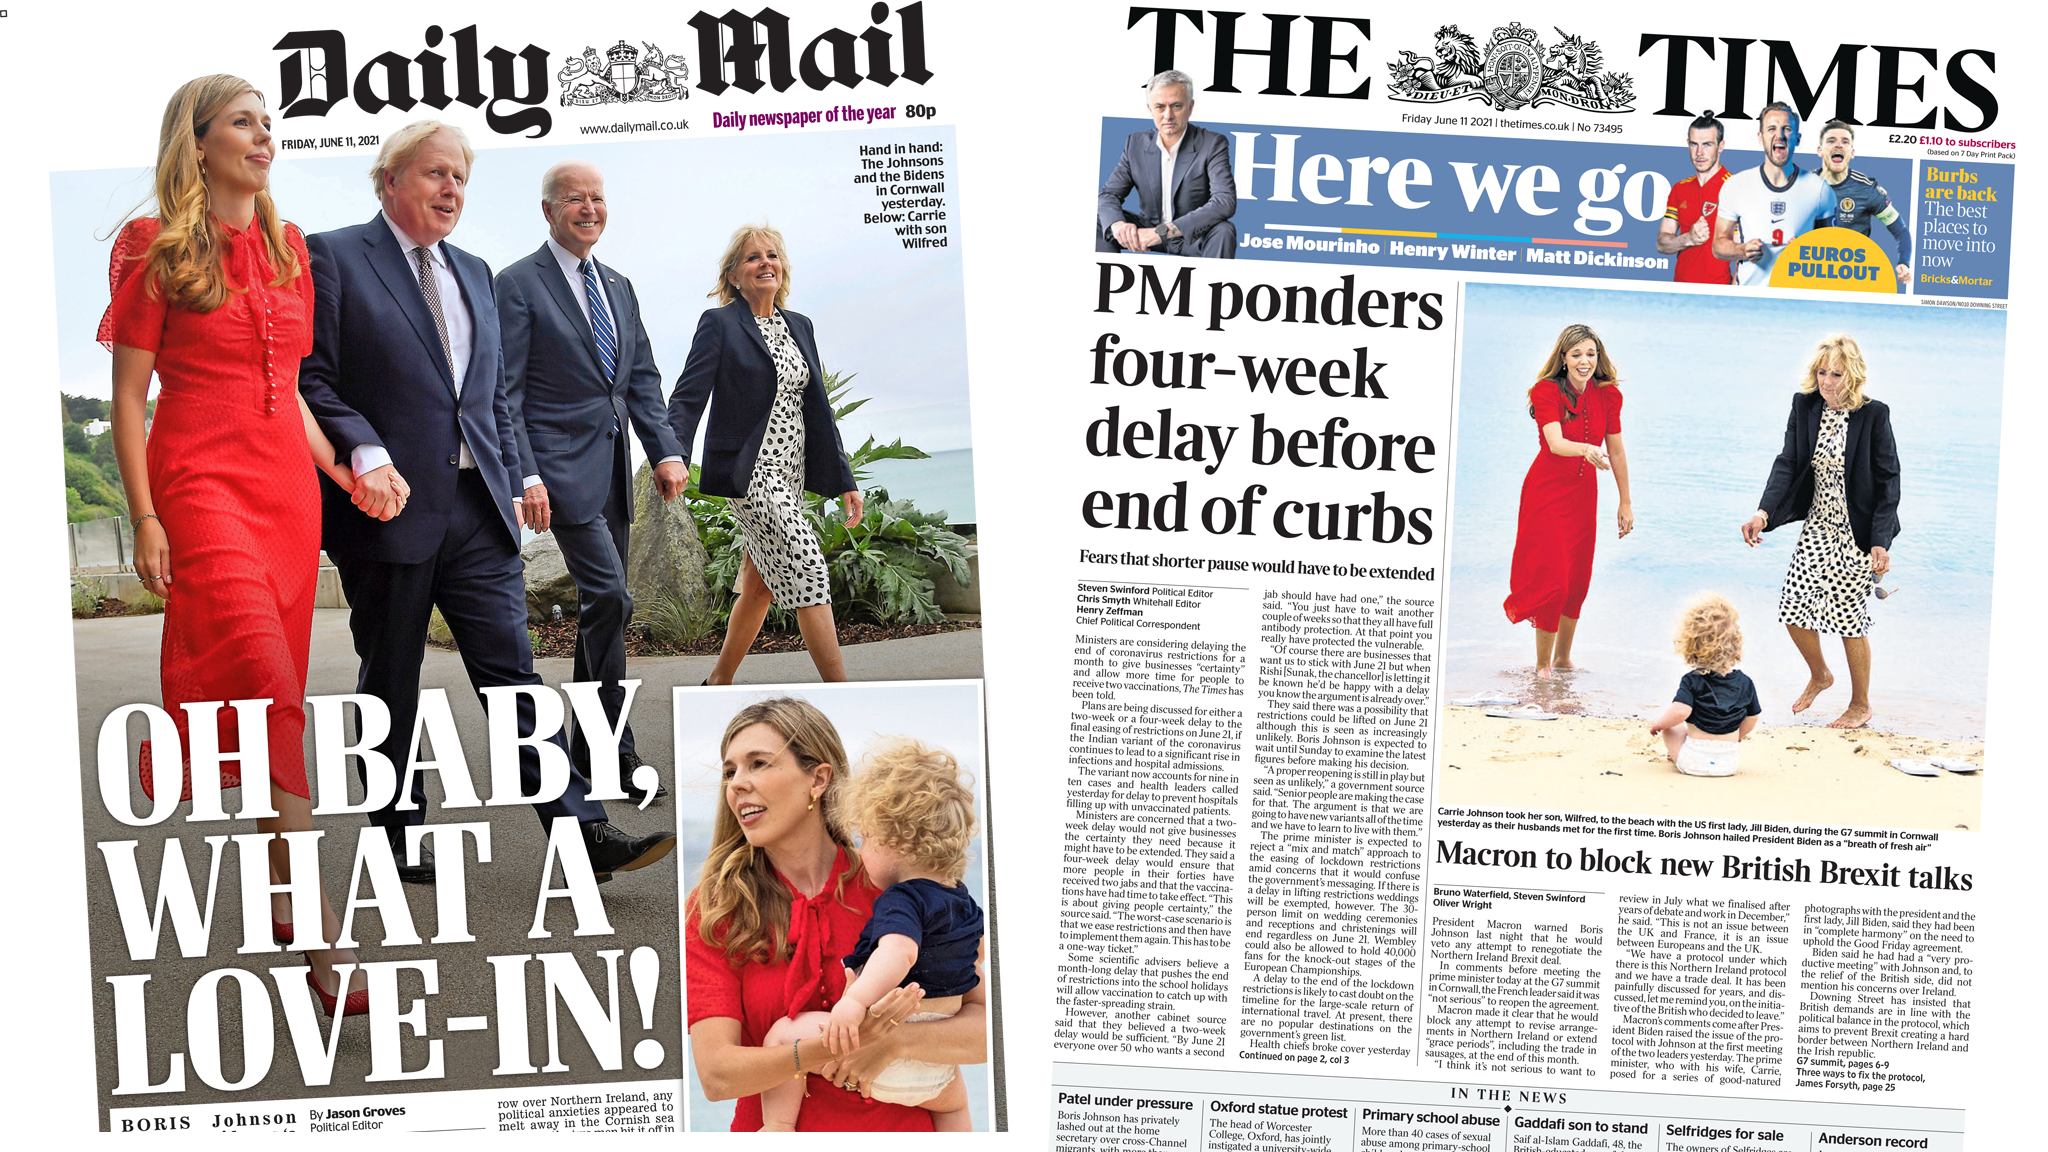 Daily Mail and the Times front page